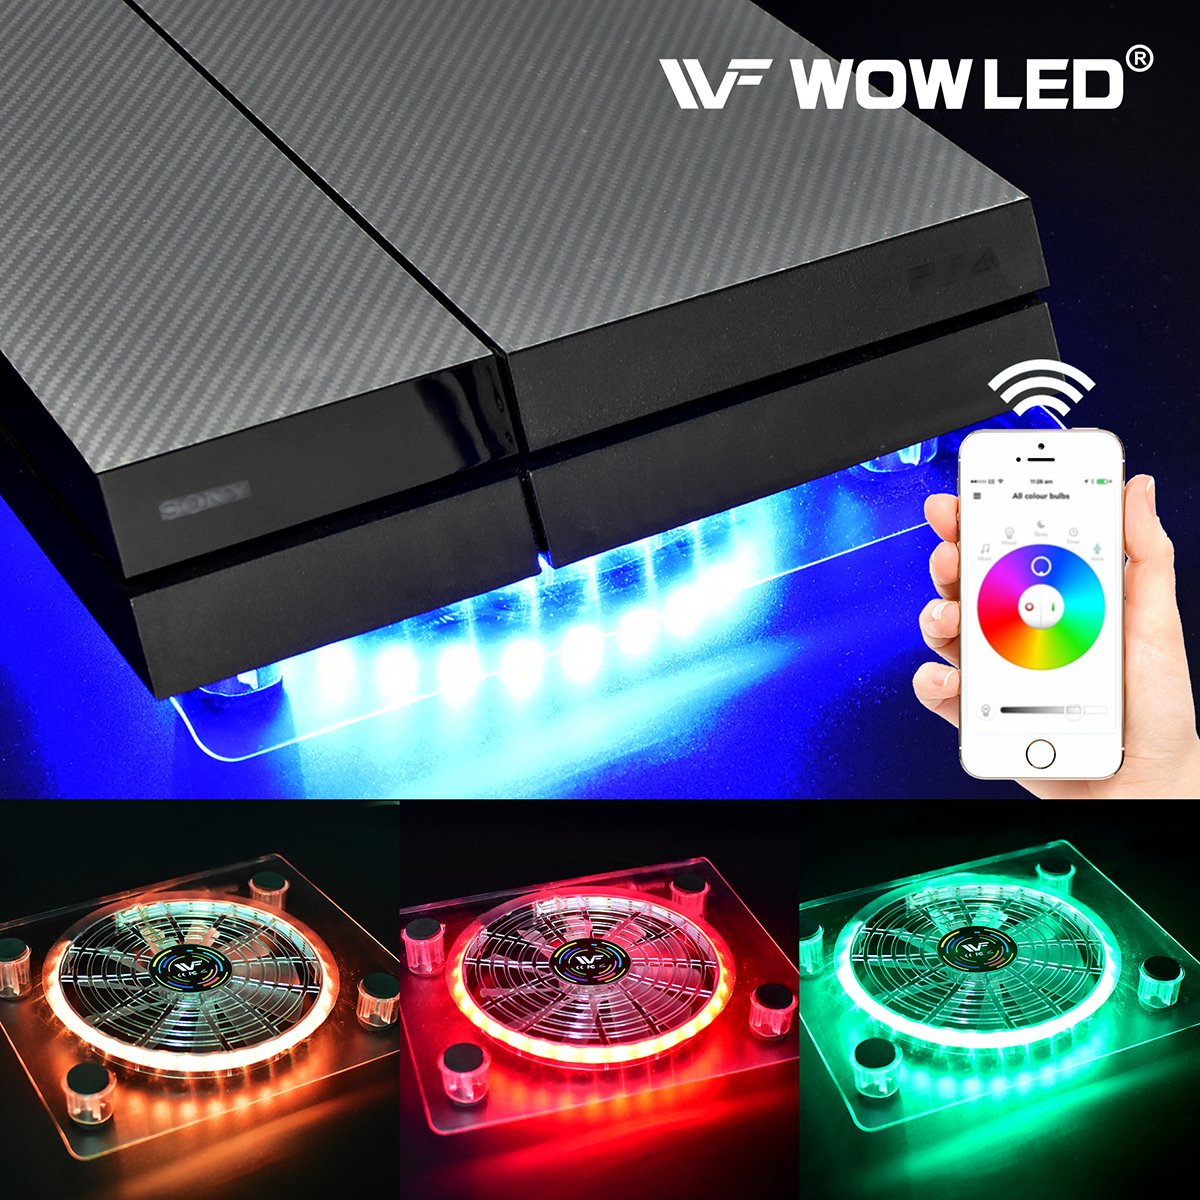 WOWLED Bluetooth Wireless Control PC Case Cooling Fan USB RGB LED Laptop Notebook Computer Cooler LED Fan Stand for PS4 Sony Playstation 4 Gaming Game XBOX One Cool Lighting Fan Thermal Fan Pad Fan